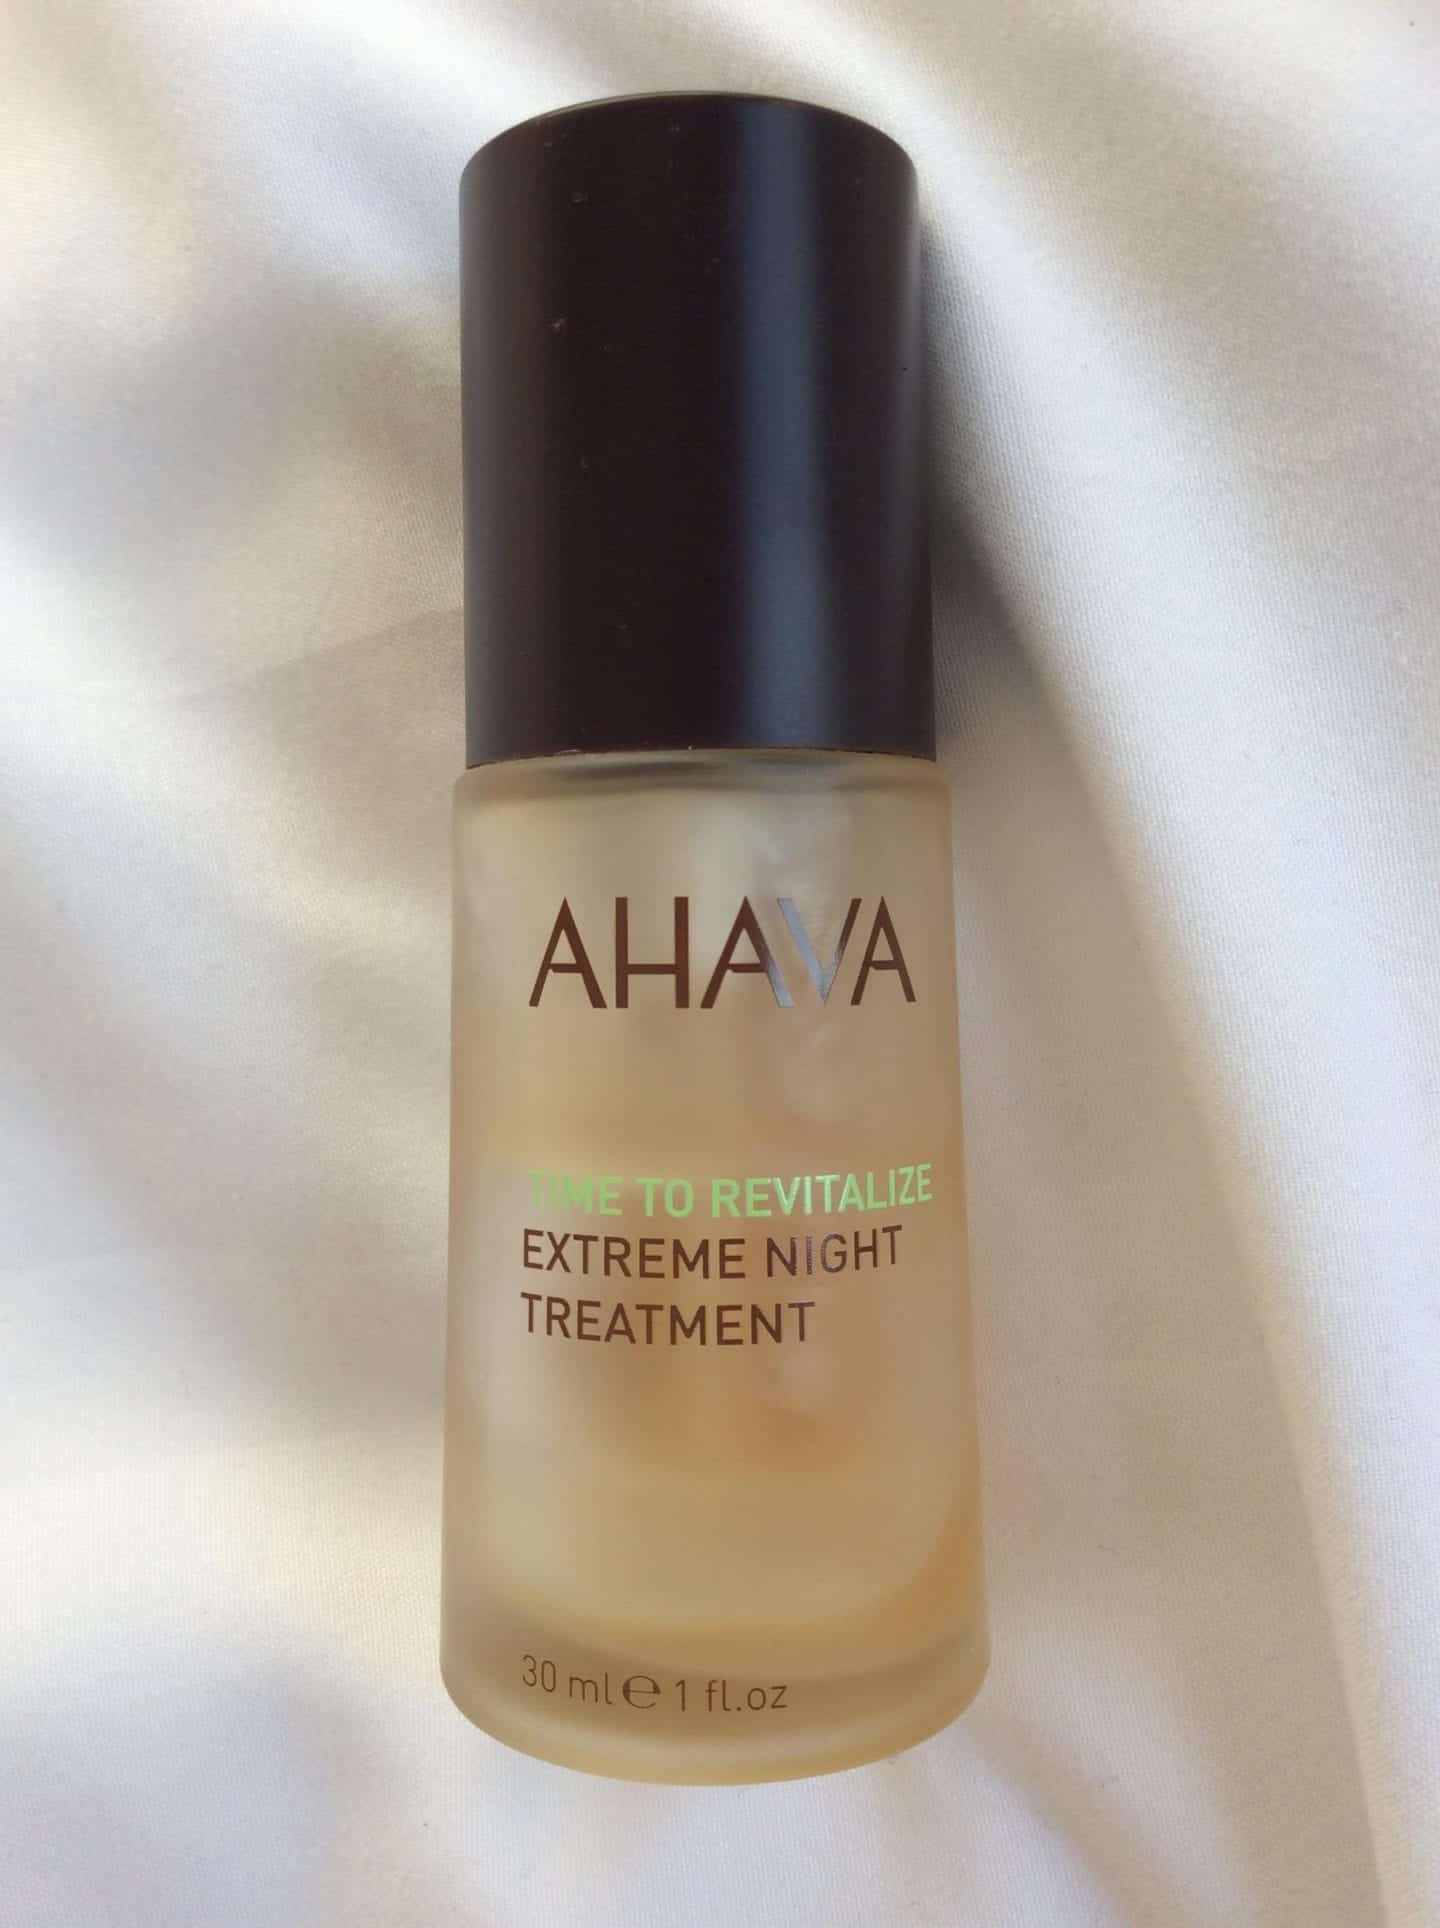 AHAVA Extreme Night Treatment - Why You Need a Facial Oil in Your Skincare Routine